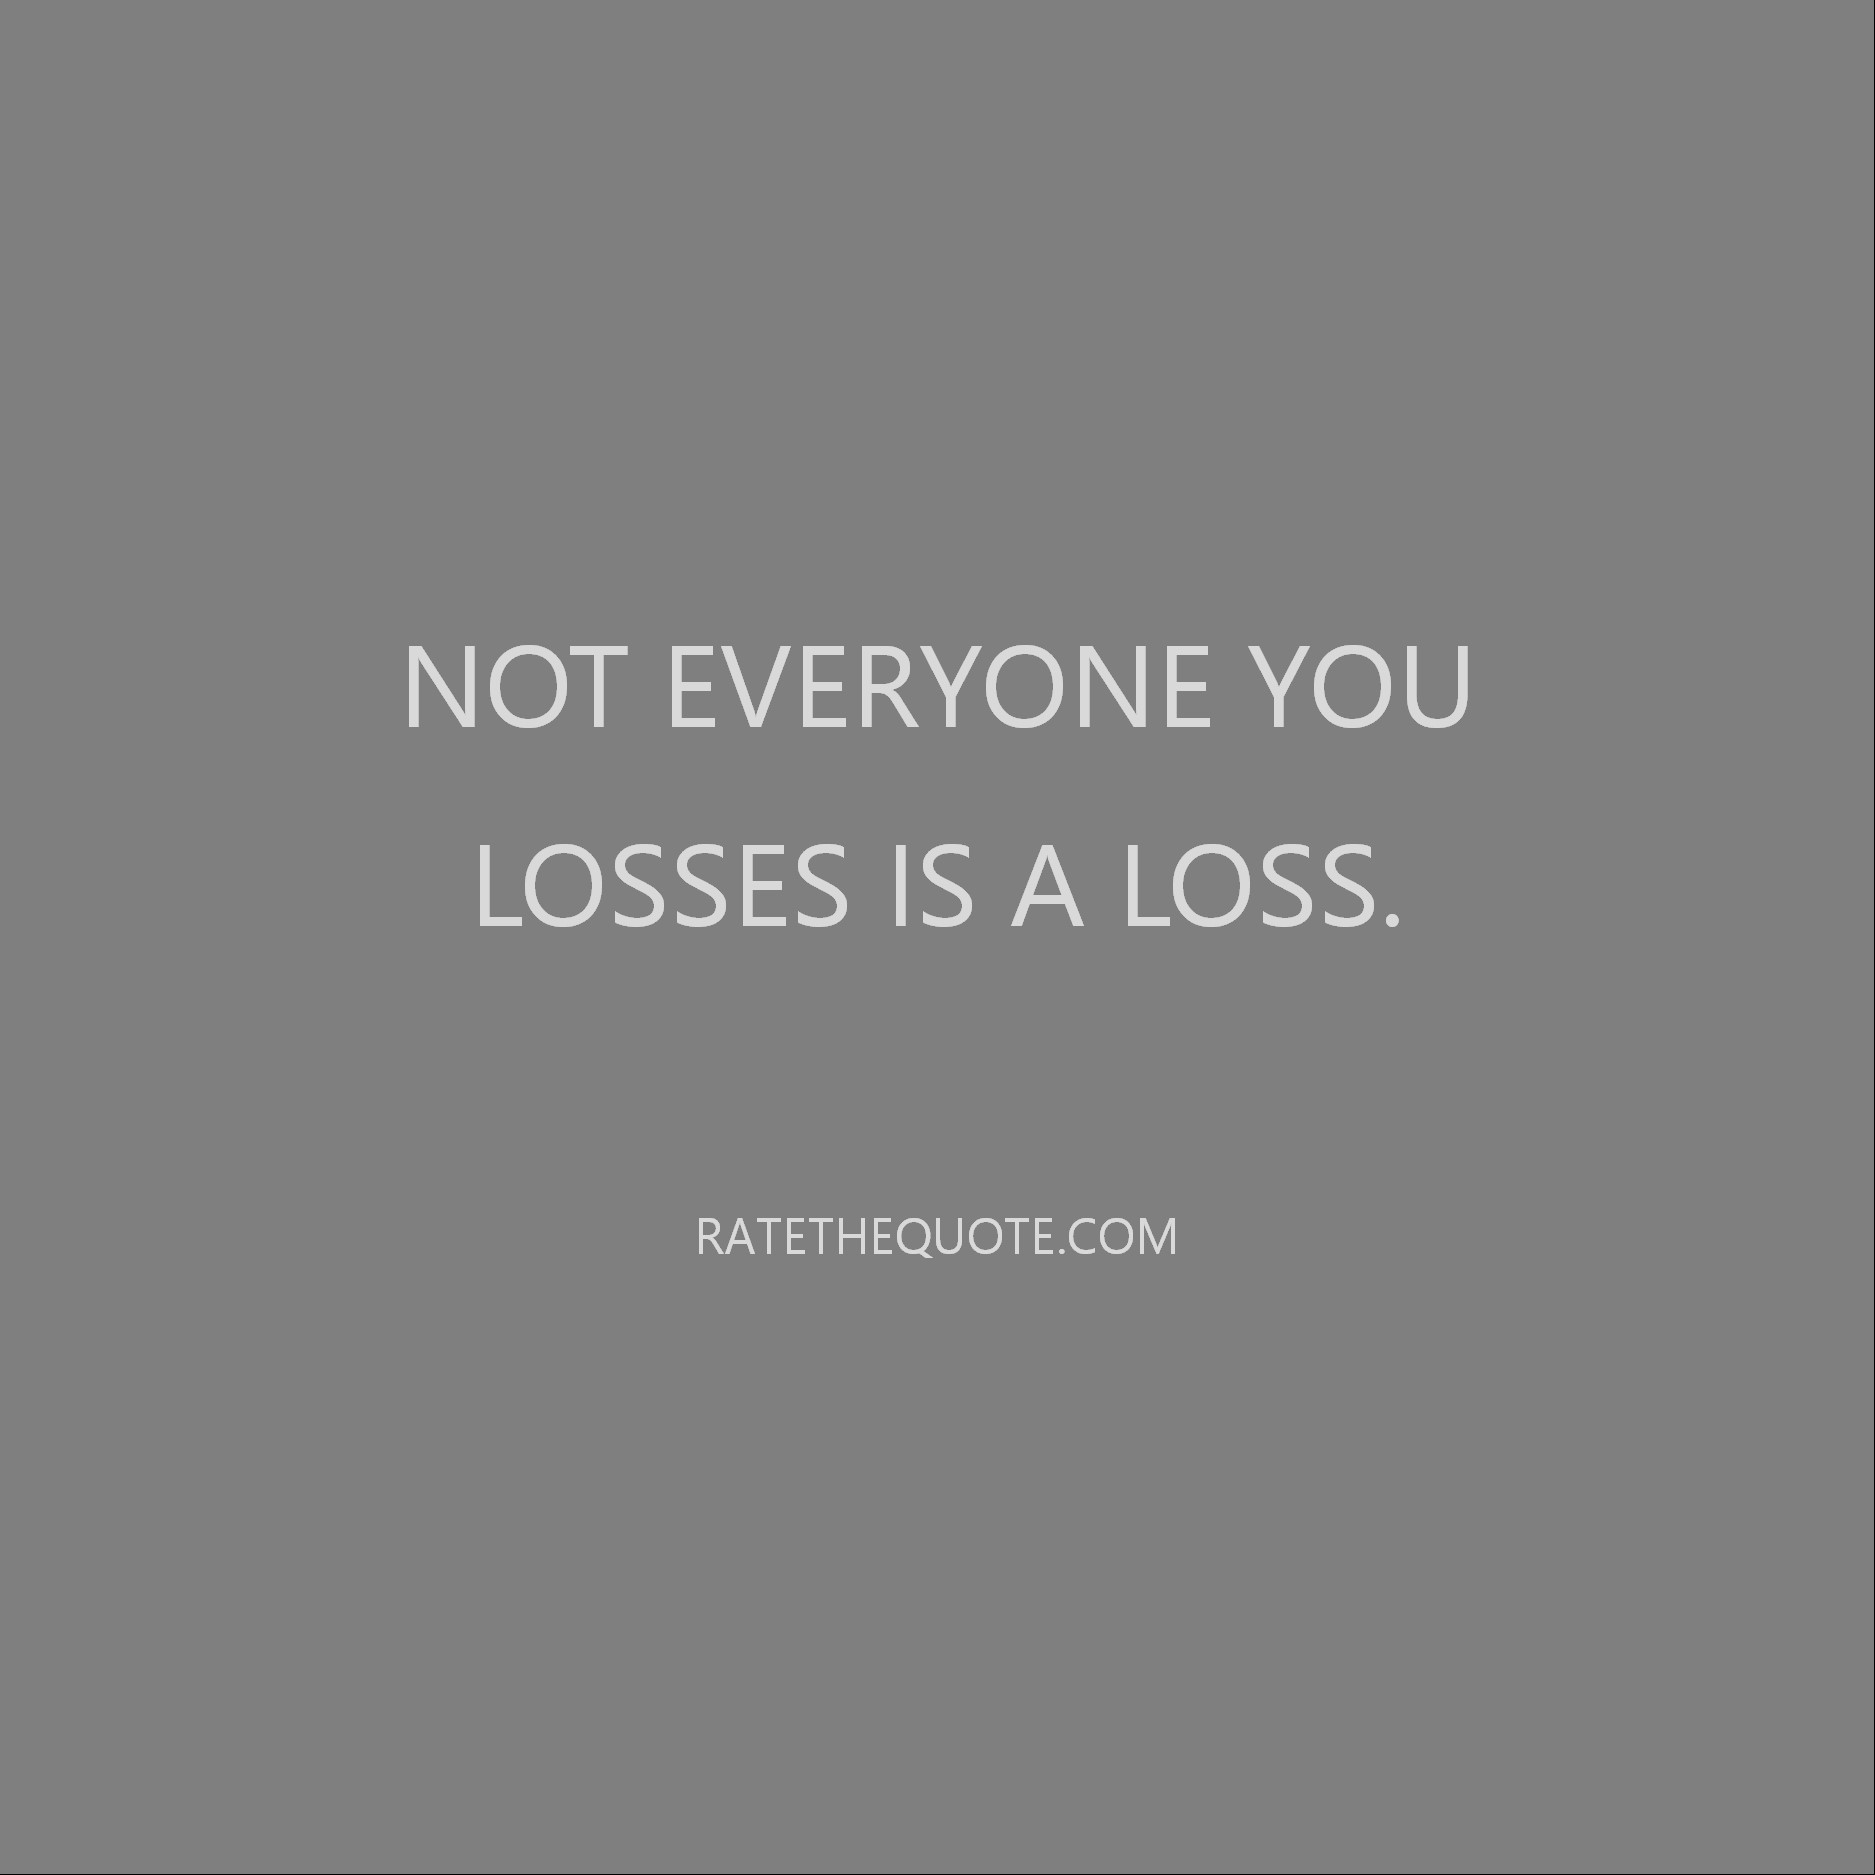 Quote Not everyone you losses is a loss.